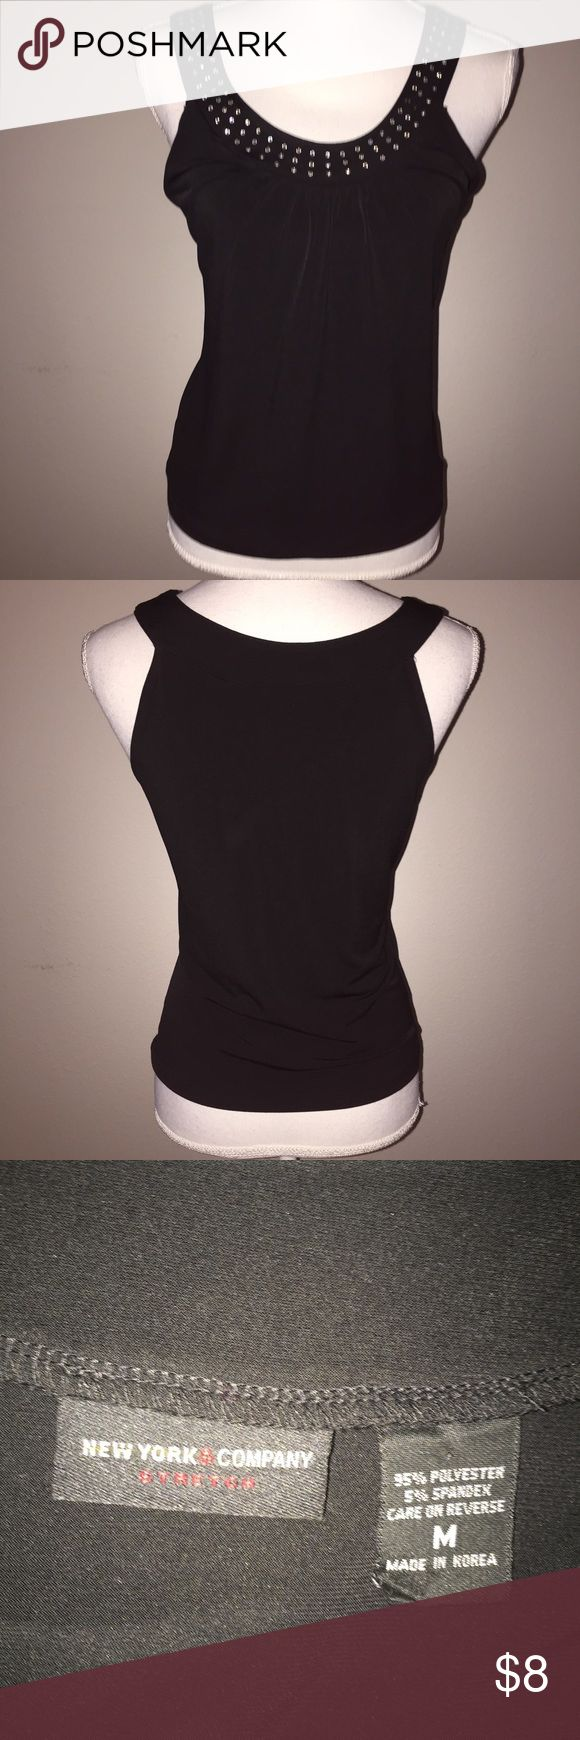 New York & Company Black Rhinestone-Adorned Top This lovey top from New York & Company is black with white rhinestone around the neckline. It is size M and is in excellent condition. If you have any questions, please ask! New York & Company Tops